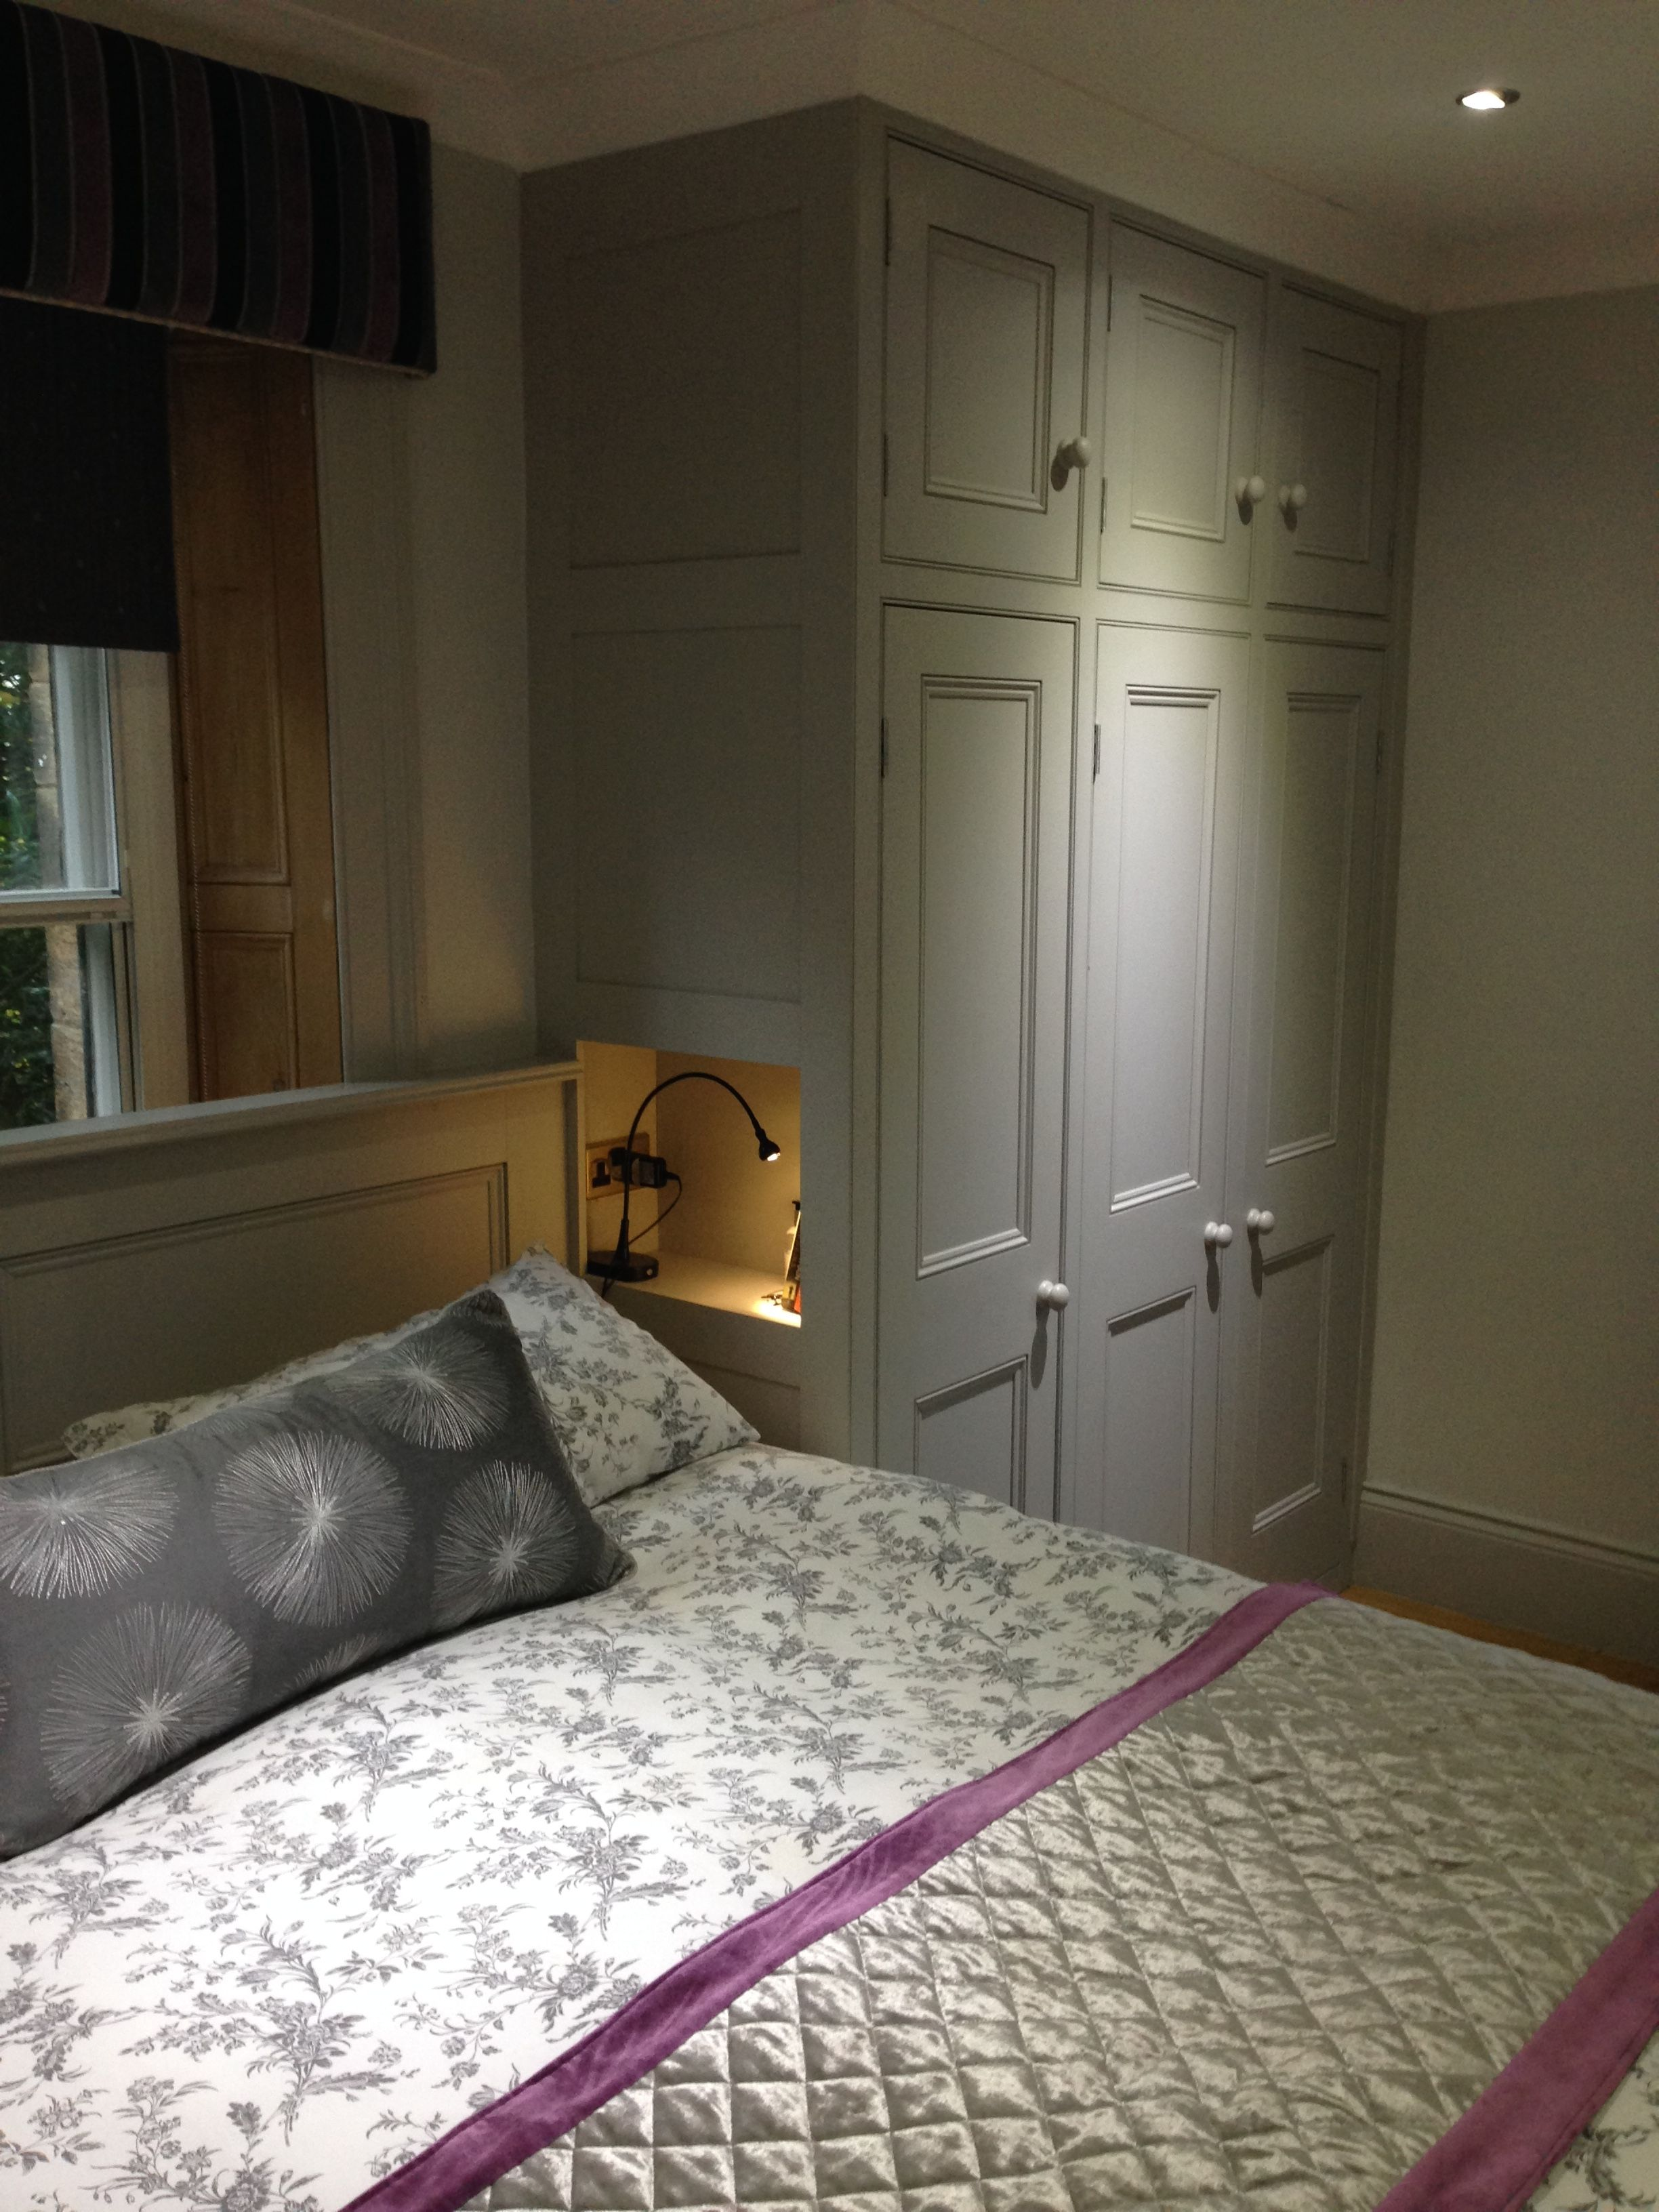 Light Grey Bedside Table: Fab Little Cubby Hole For A Light, Book, Night Time